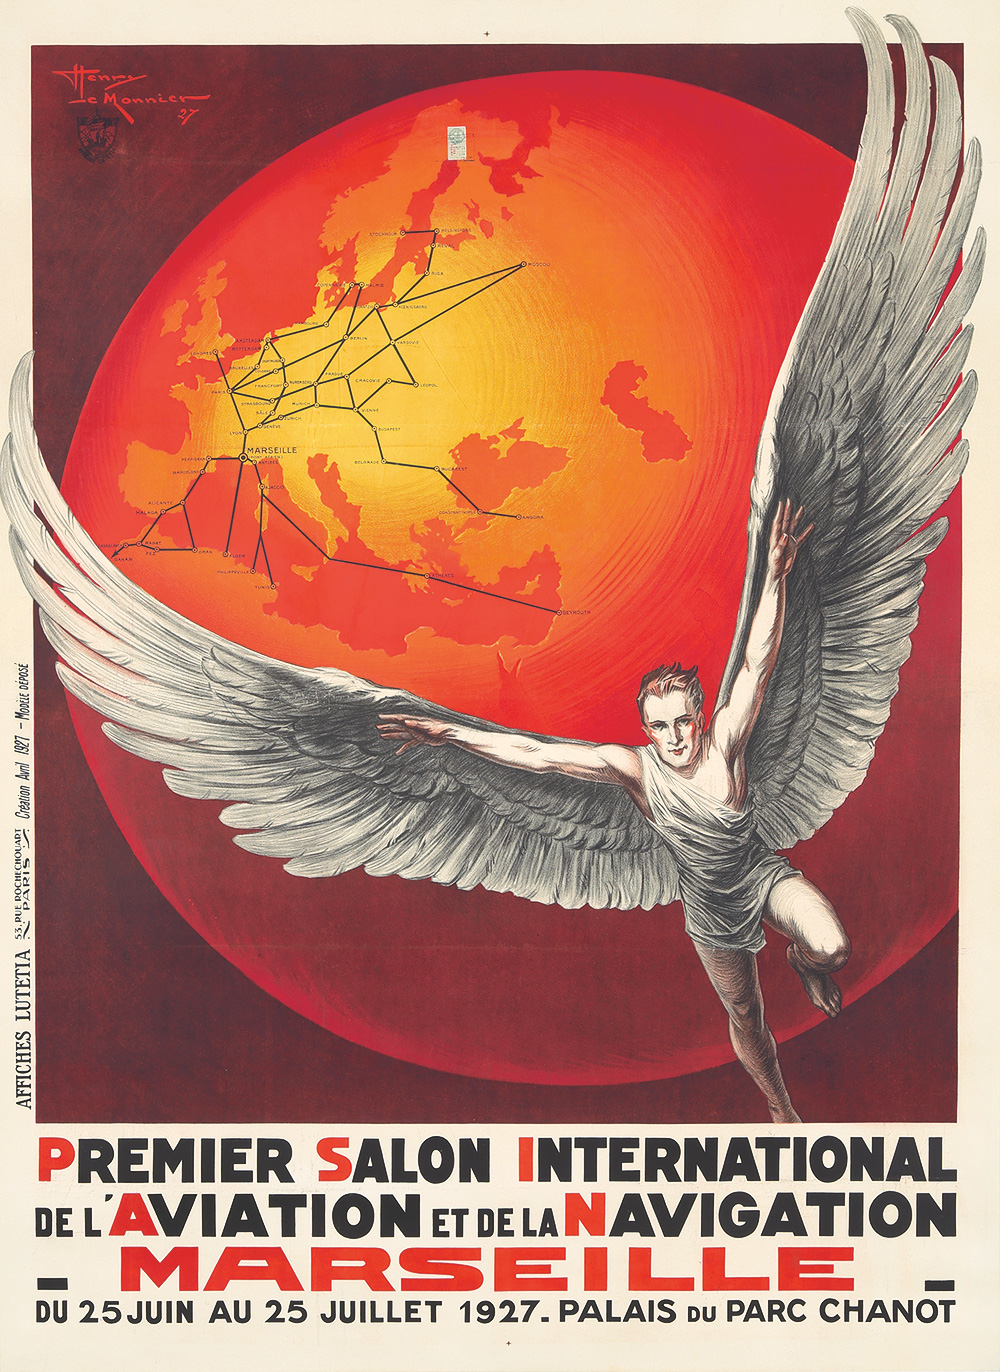 79. Premier Salon Int'l de l'Aviation et de la Navigation. 1927.